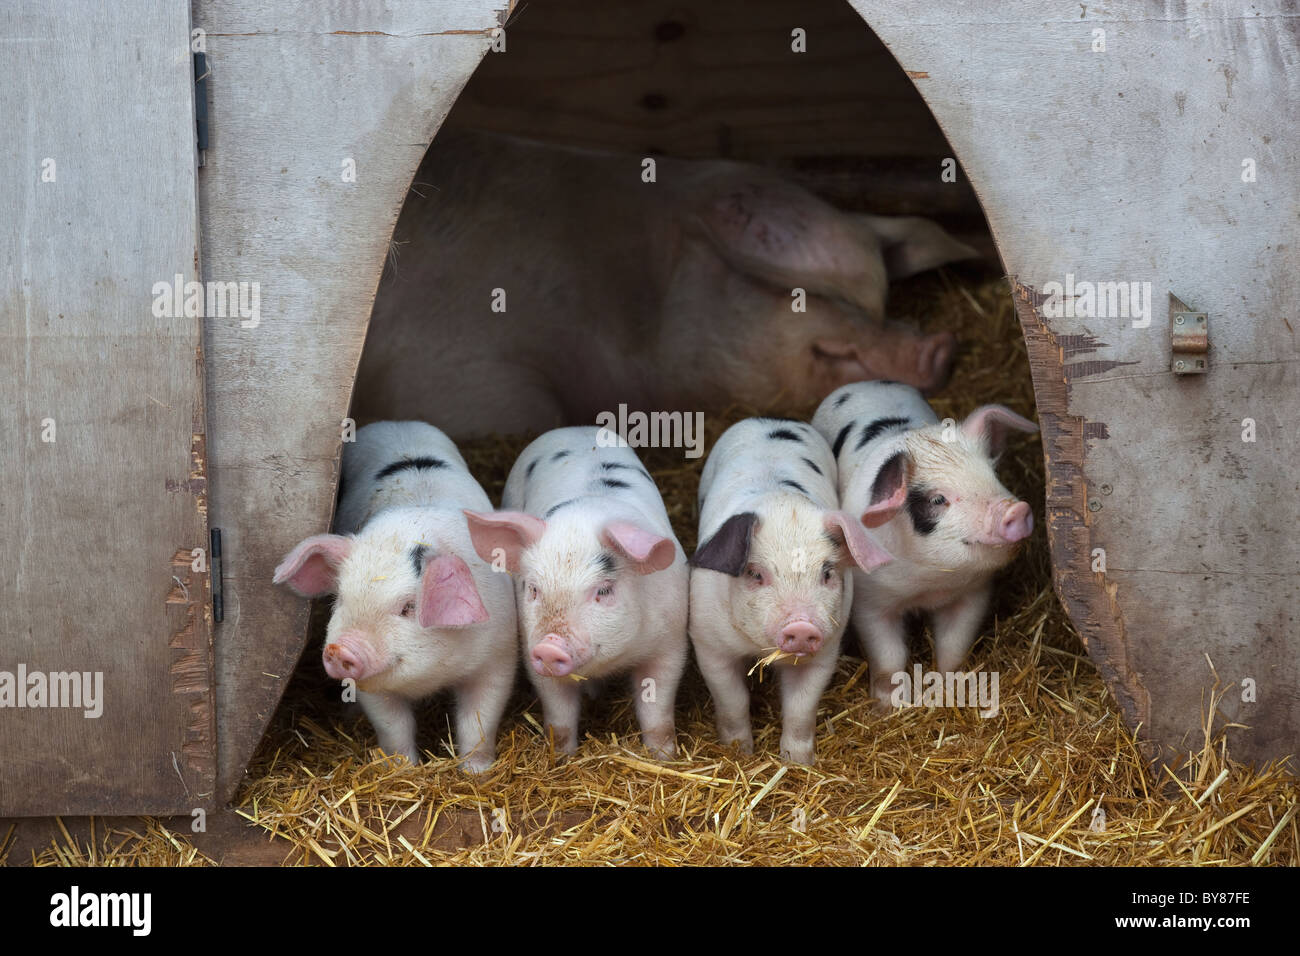 Gloucester Old-spot rare breed Piglets looking from sty - Stock Image